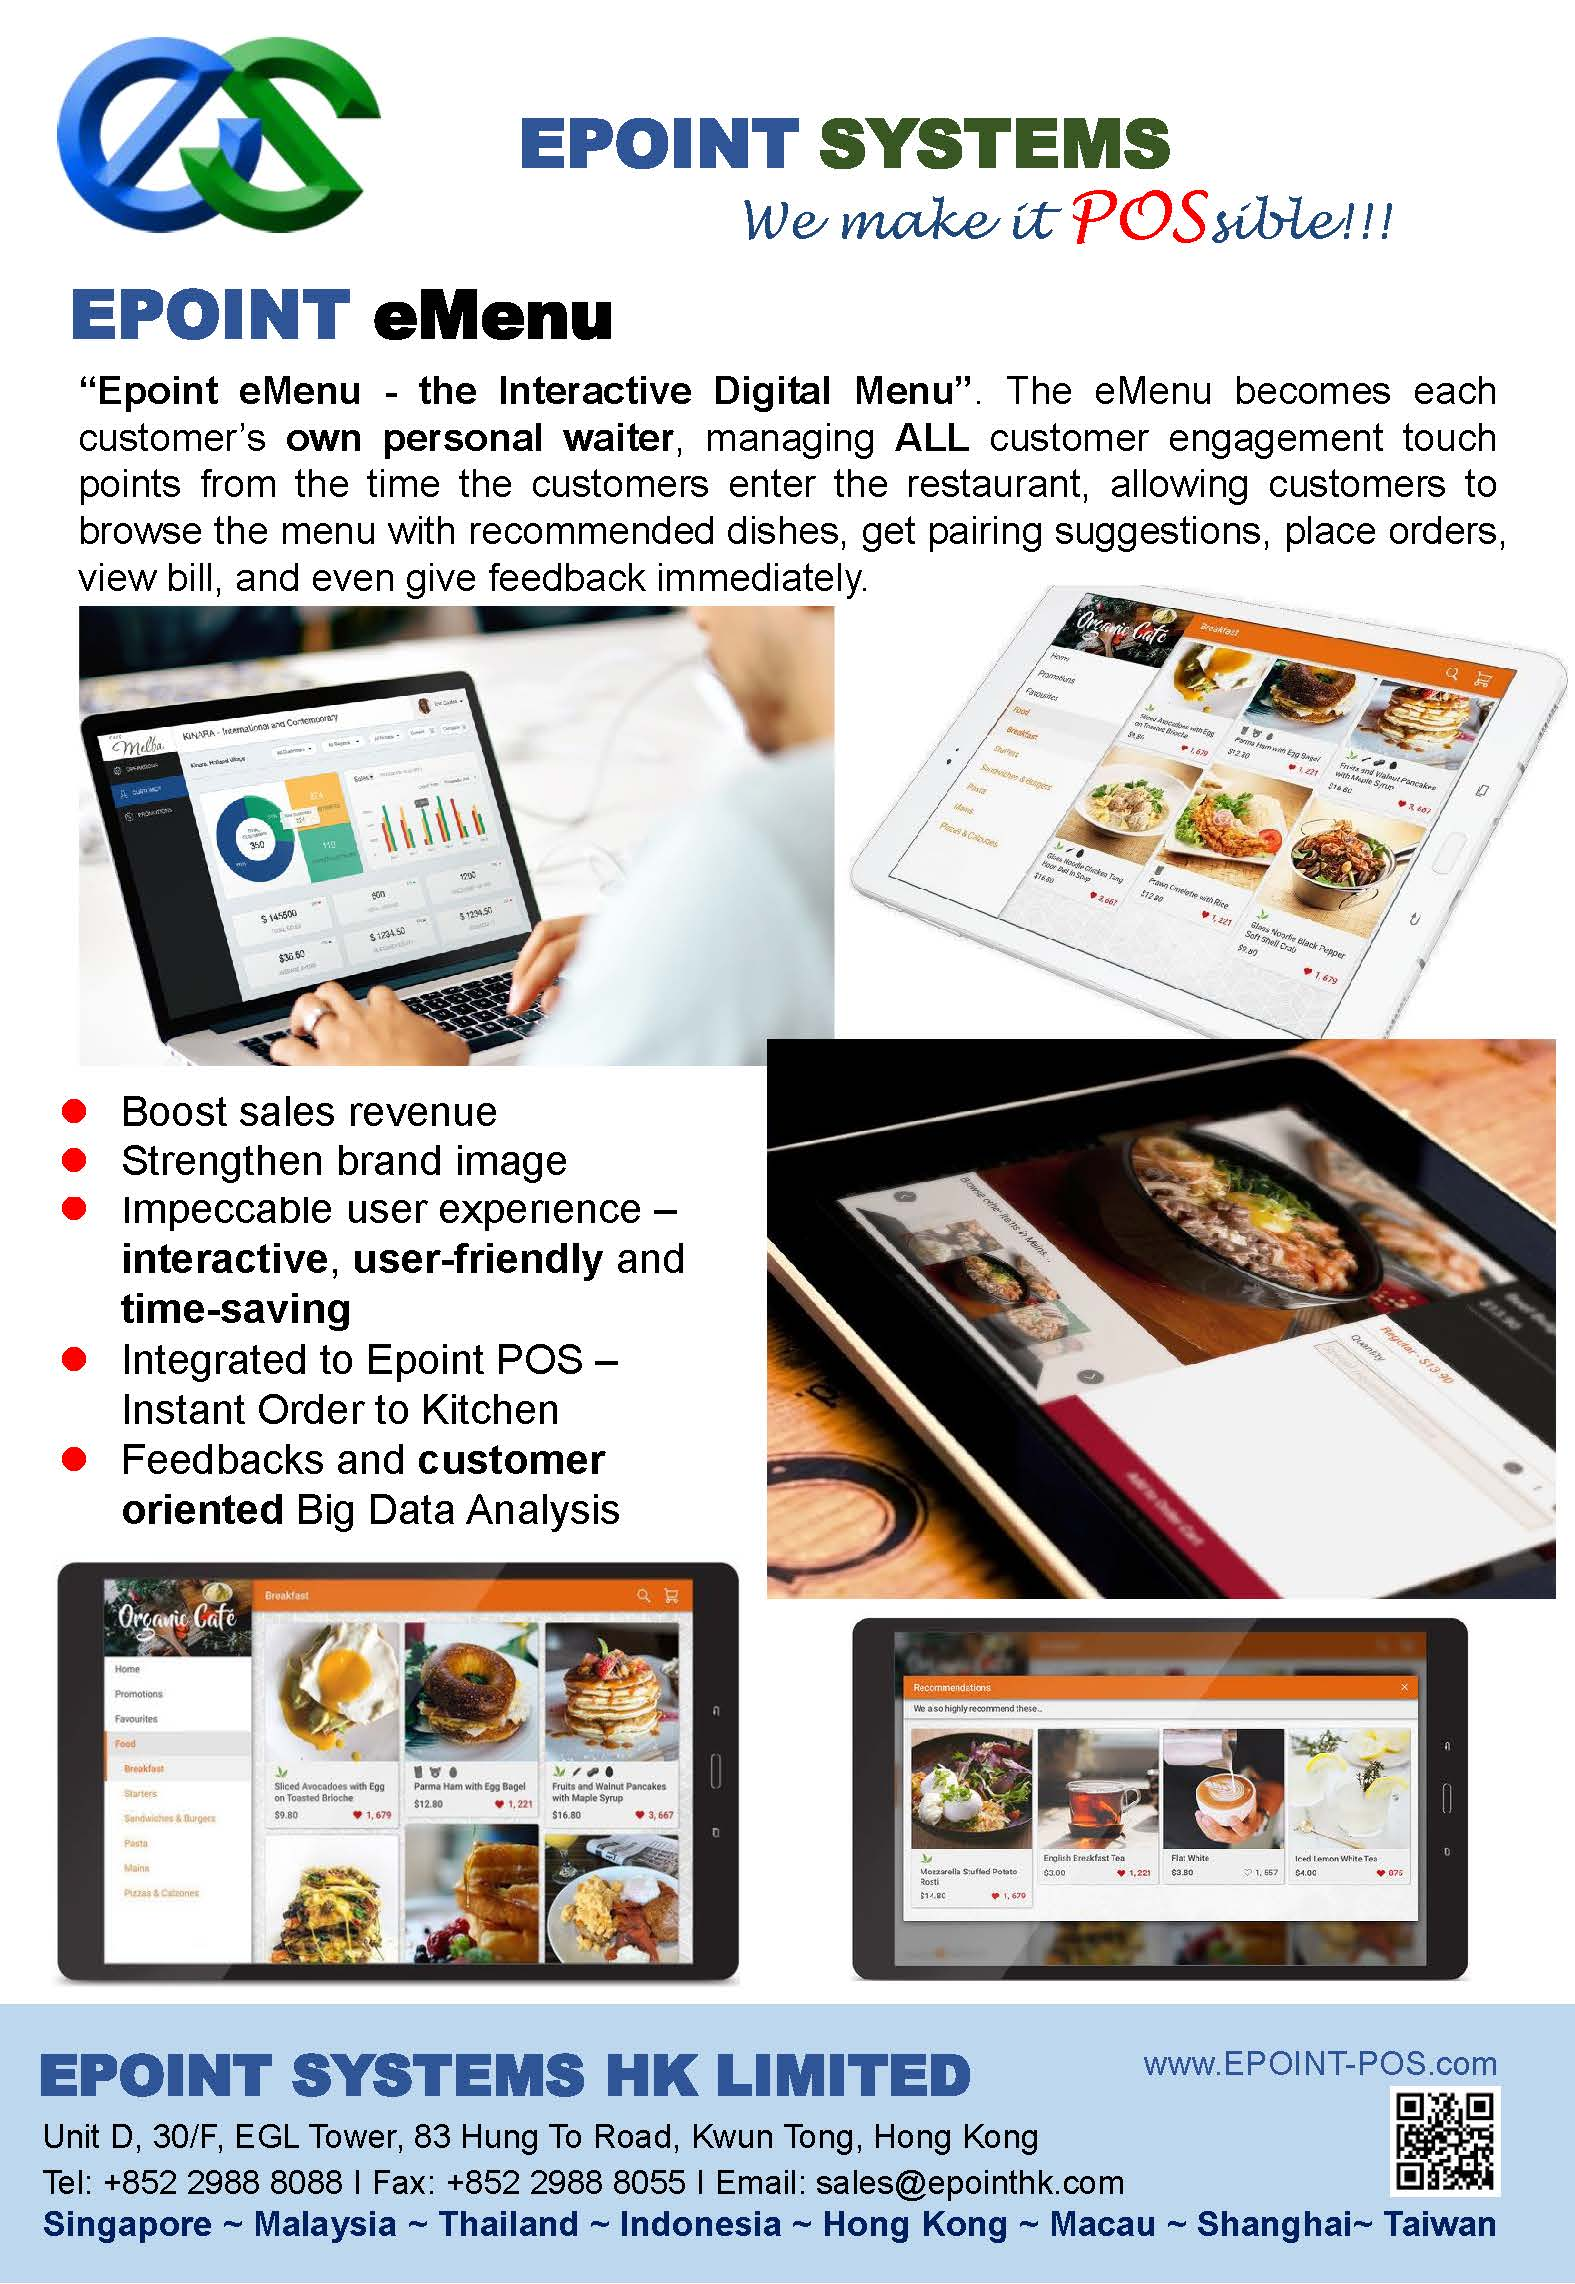 epoint systems hk limited pos system